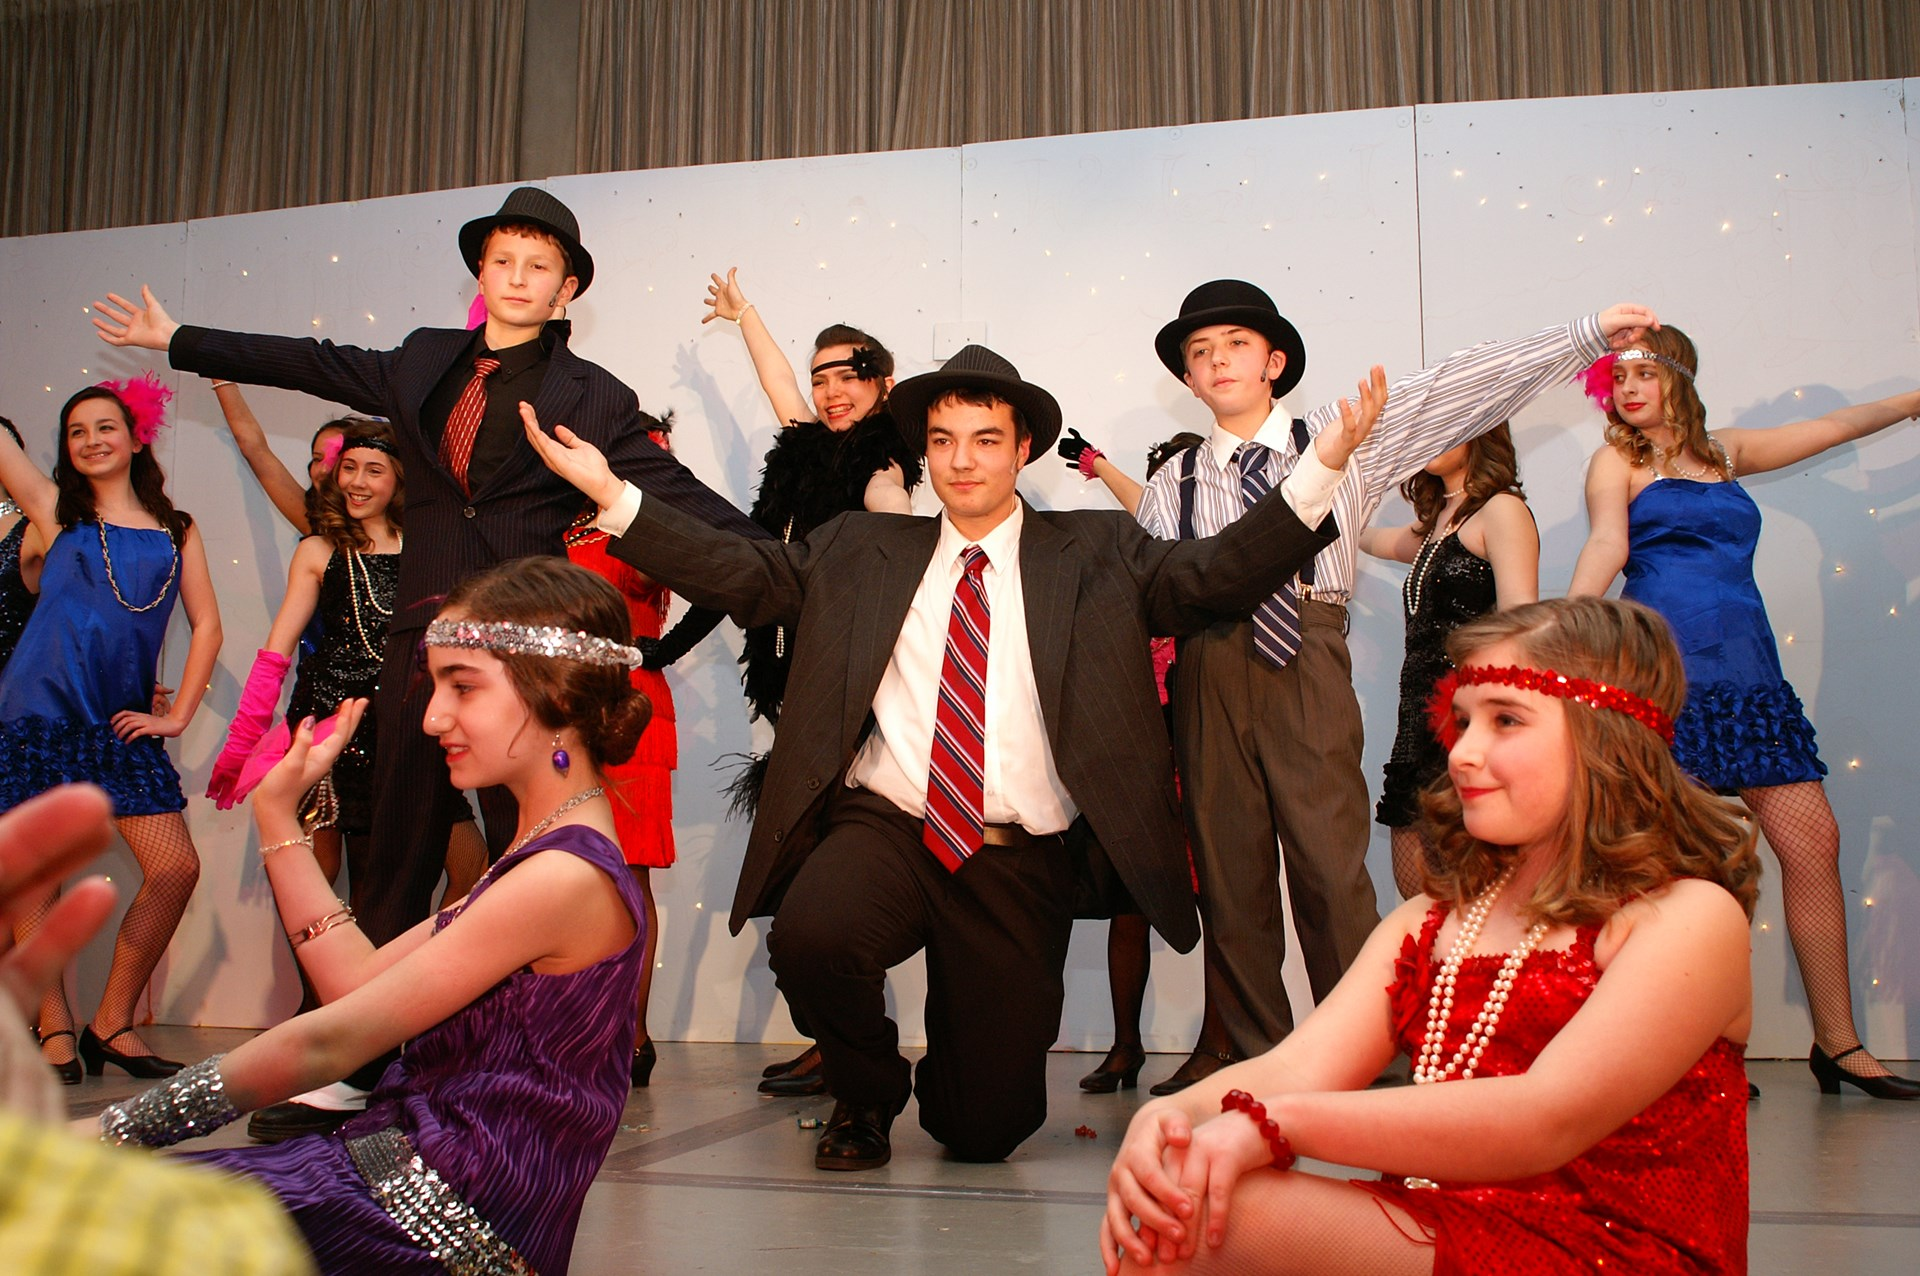 Bugsy malone Play